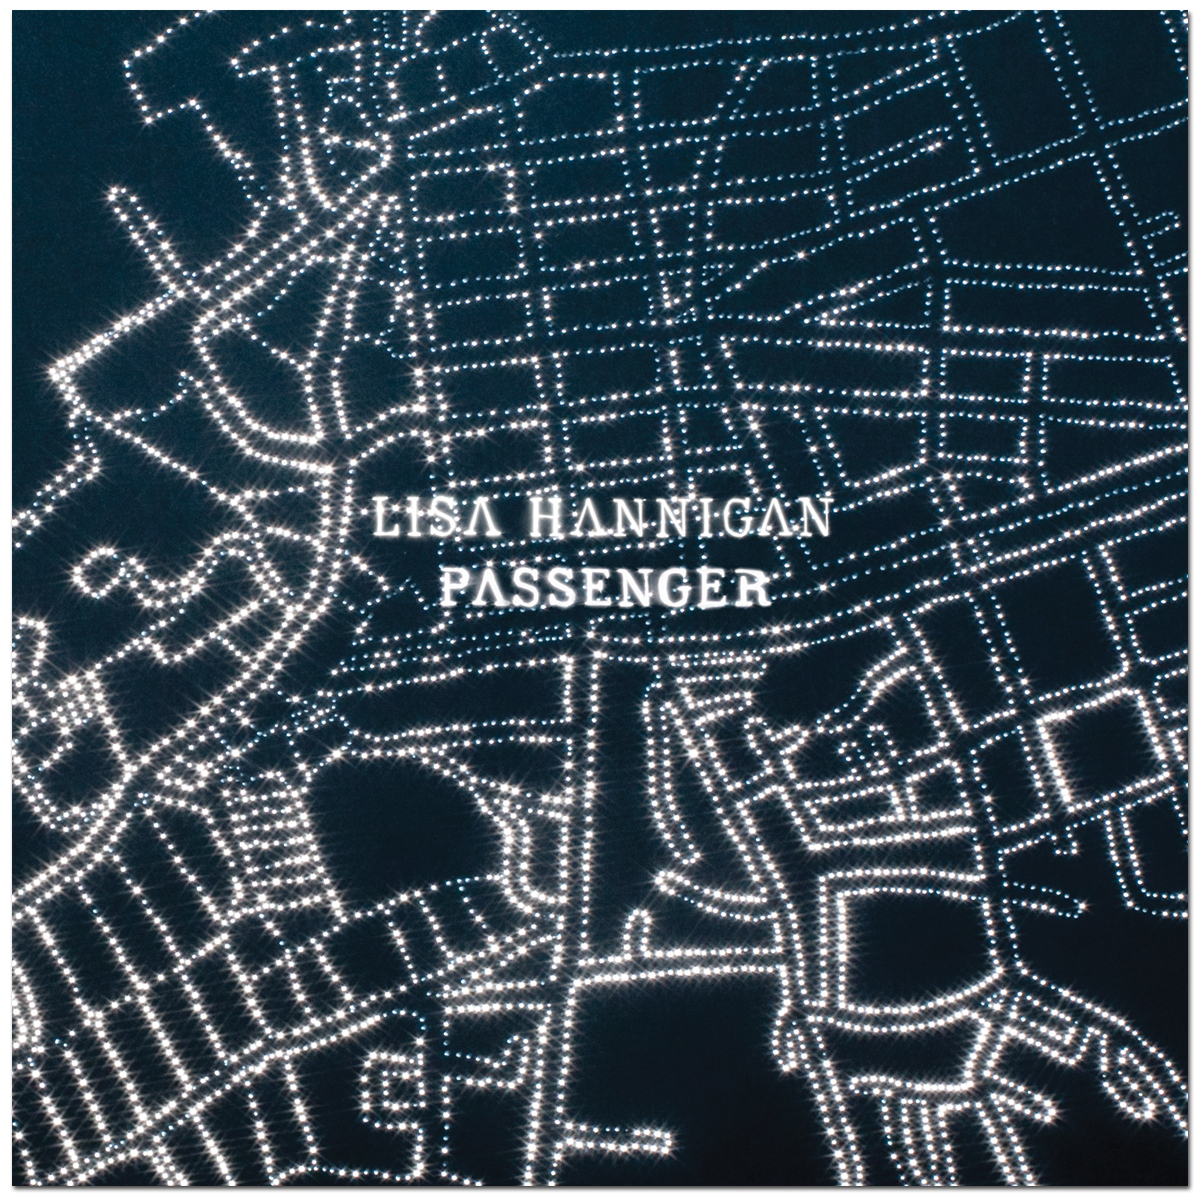 Lisa Hannigan – Passenger Digital Download